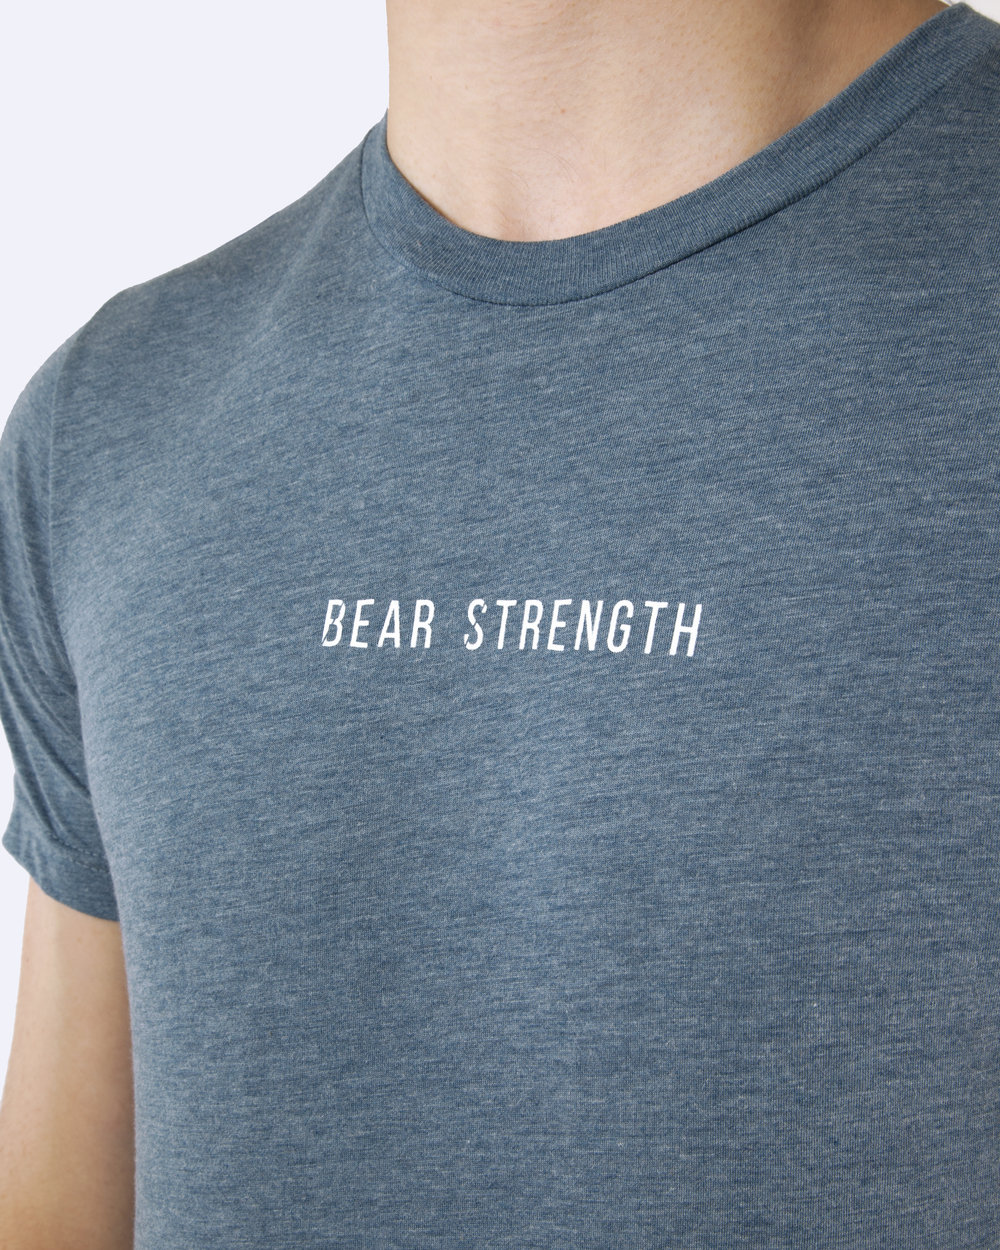 Rag house studio bearstrength 7694.jpg